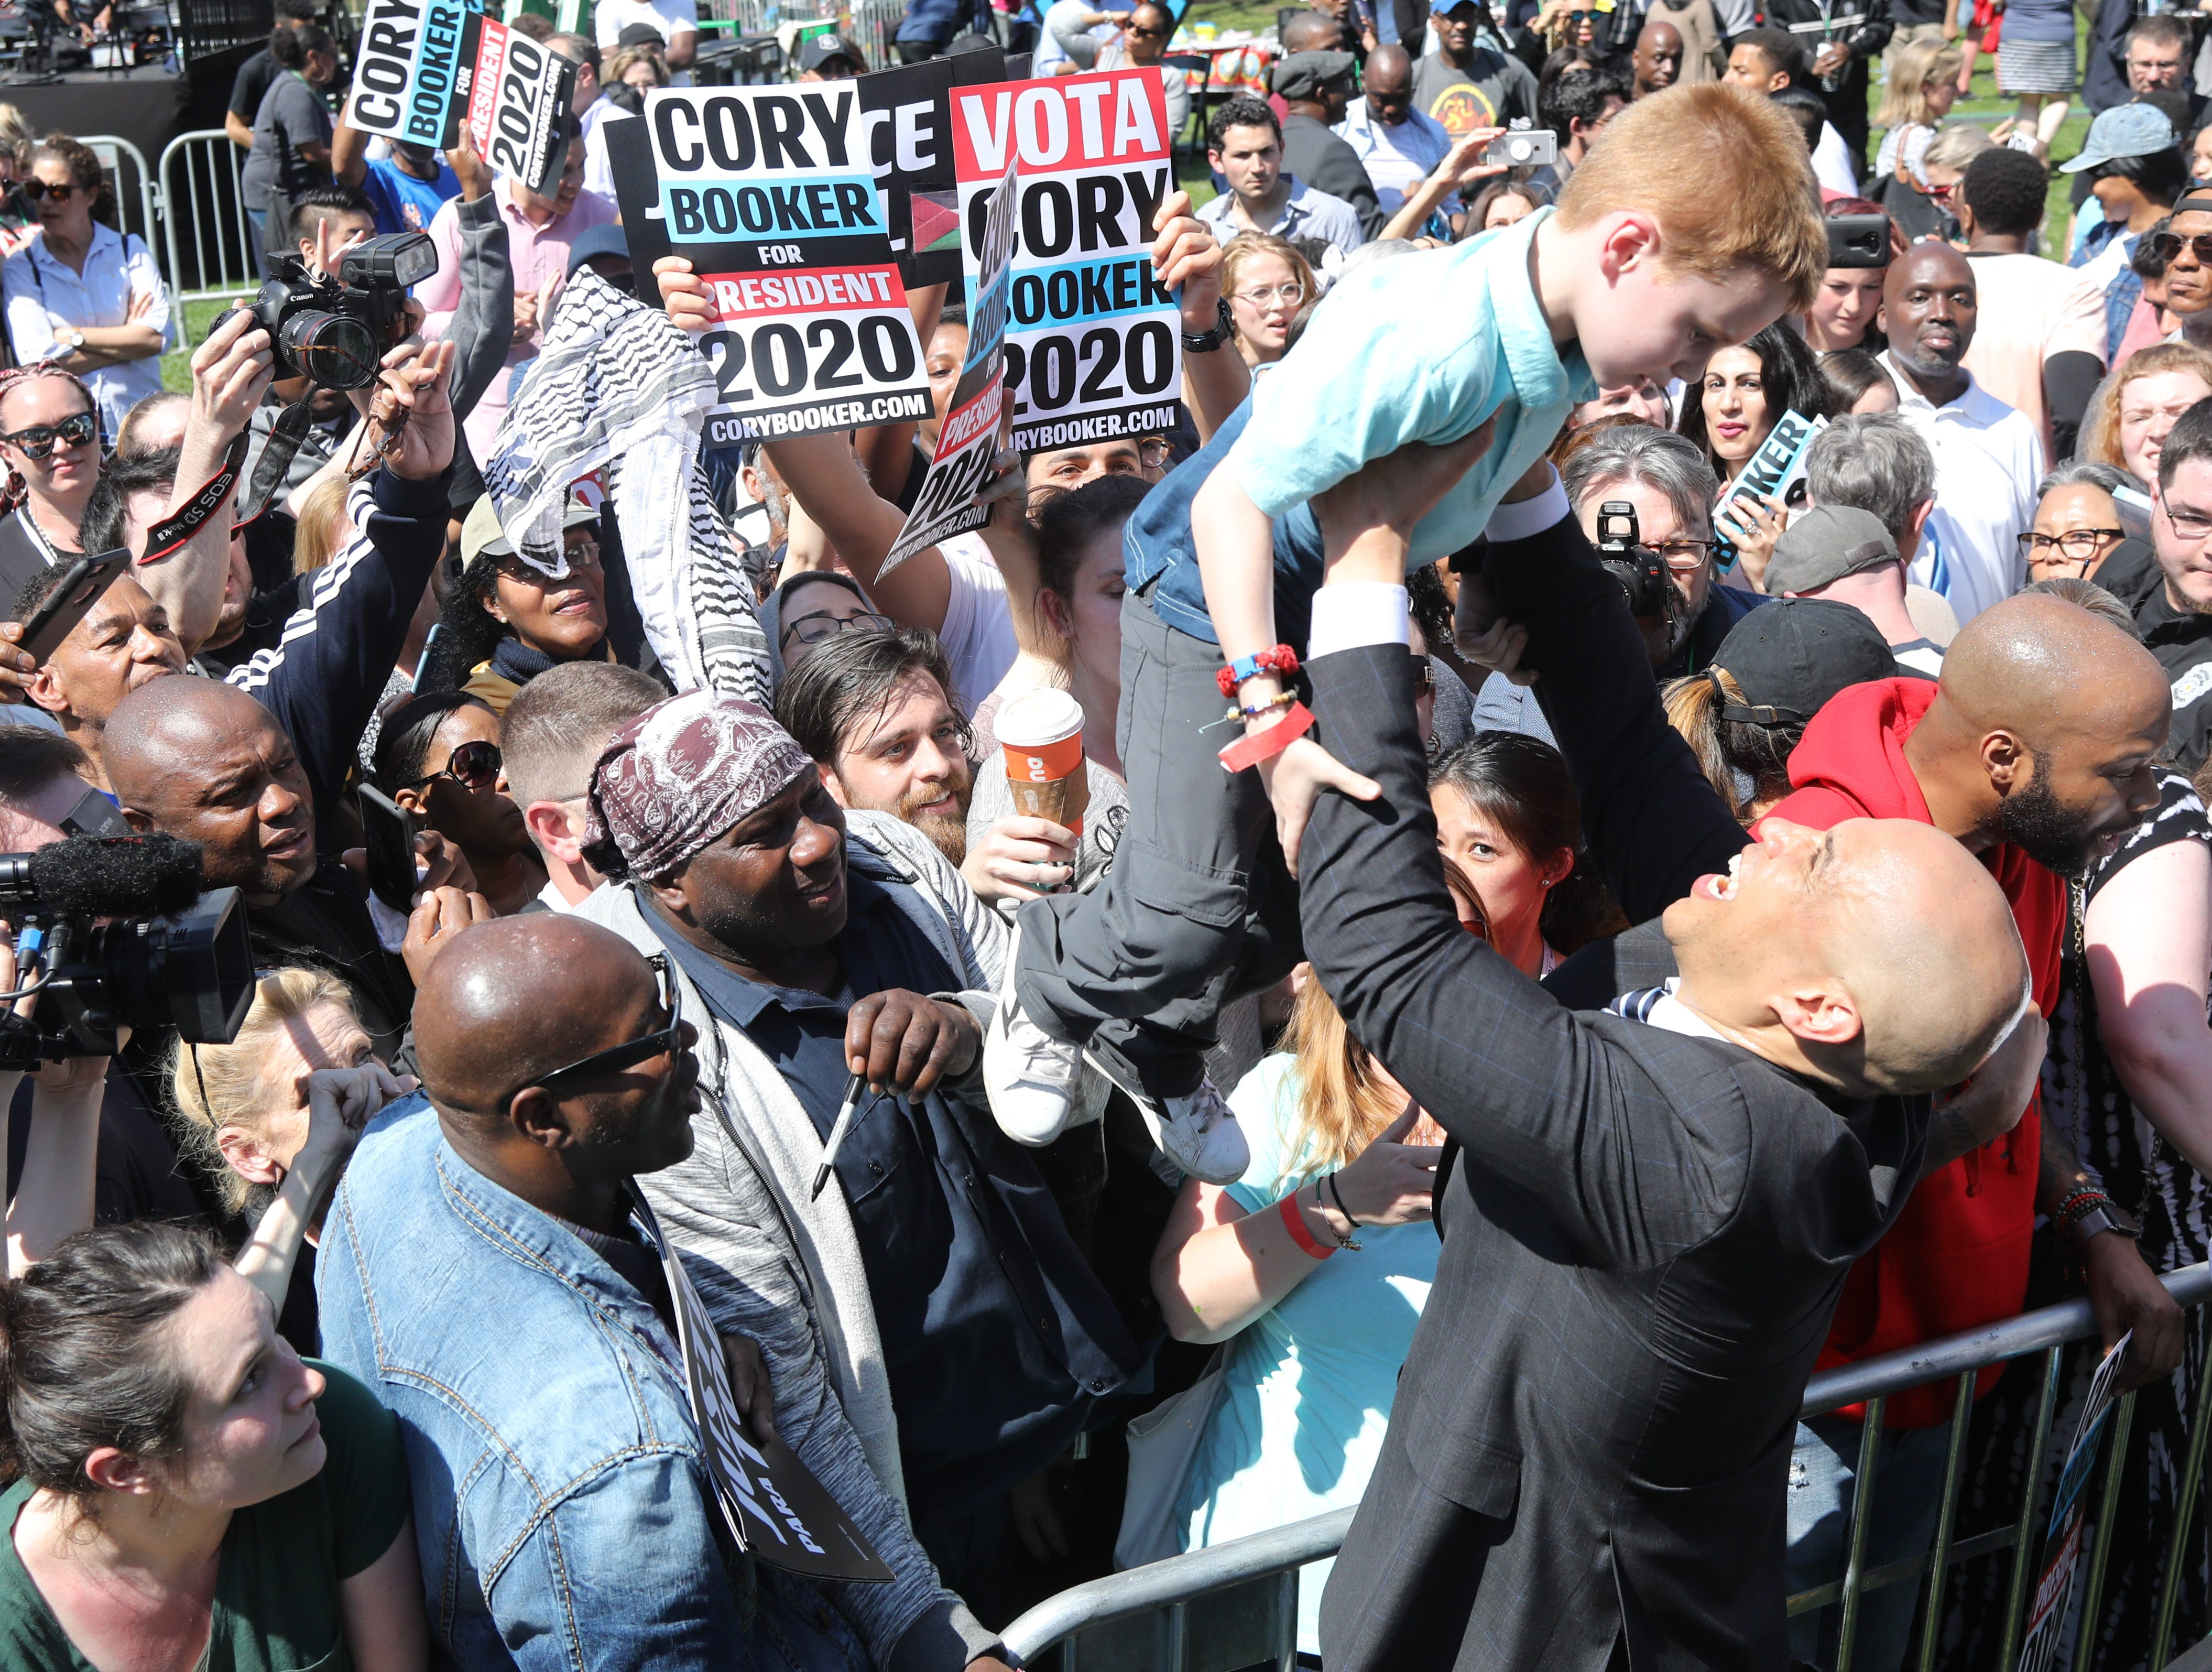 Senator Cory Booker works the rope line, shaking hands, taking selfies and meeting kids at a rally to kick off the Cory Booker campaign for president that was held at Military Park in Newark on April 13, 2019.